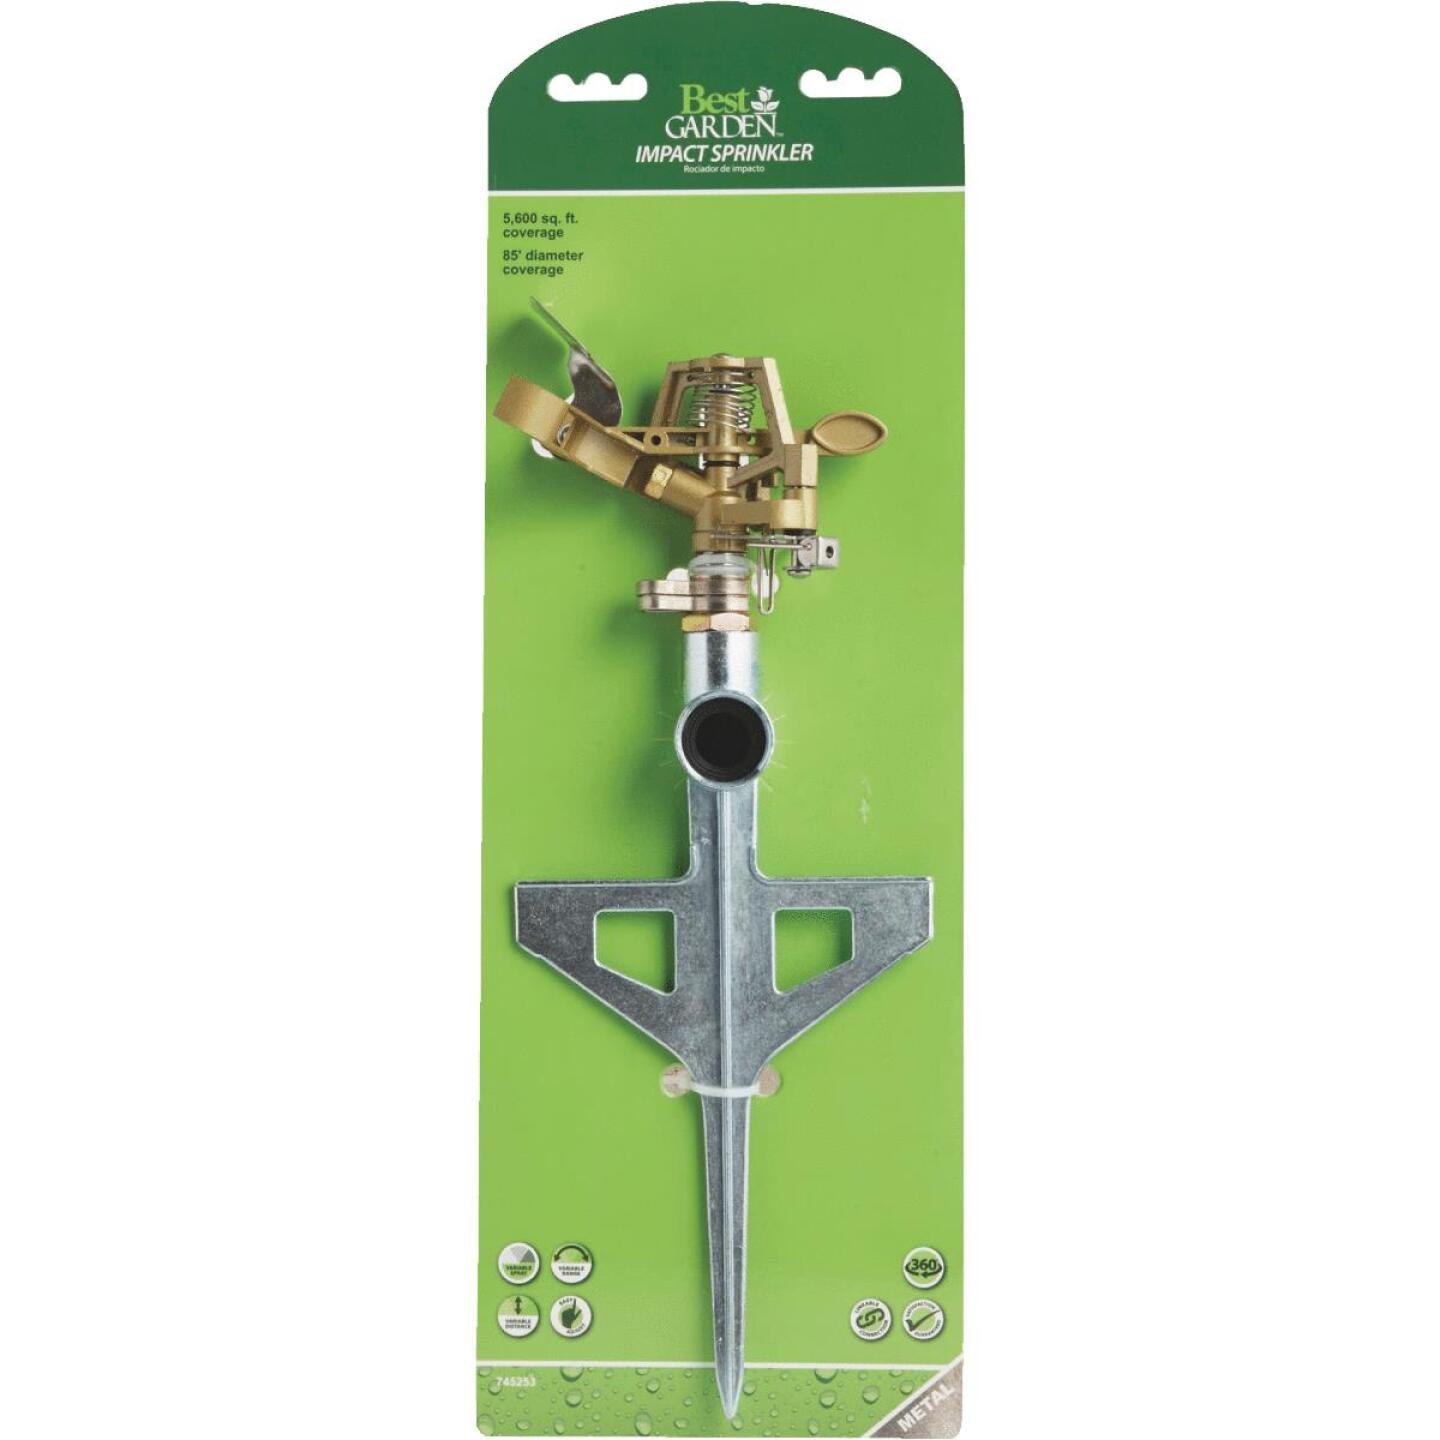 Best Garden Metal 5600 Sq. Ft. T-Spike Impulse Sprinkler Image 2